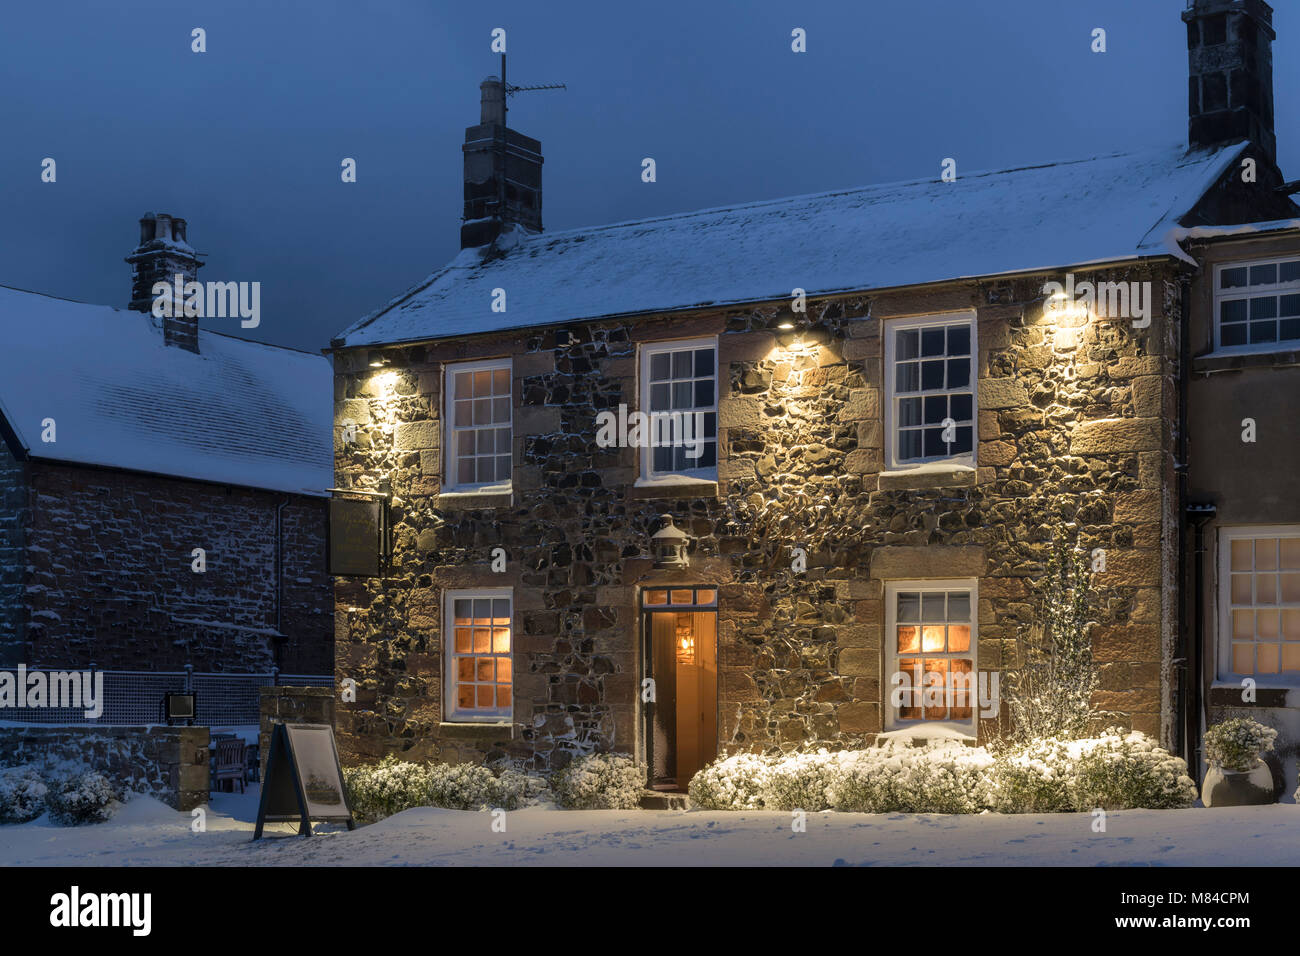 Welcoming village inn on a snowy winter evening, Bamburgh, Northumberland, England. Winter (February) 2018. - Stock Image